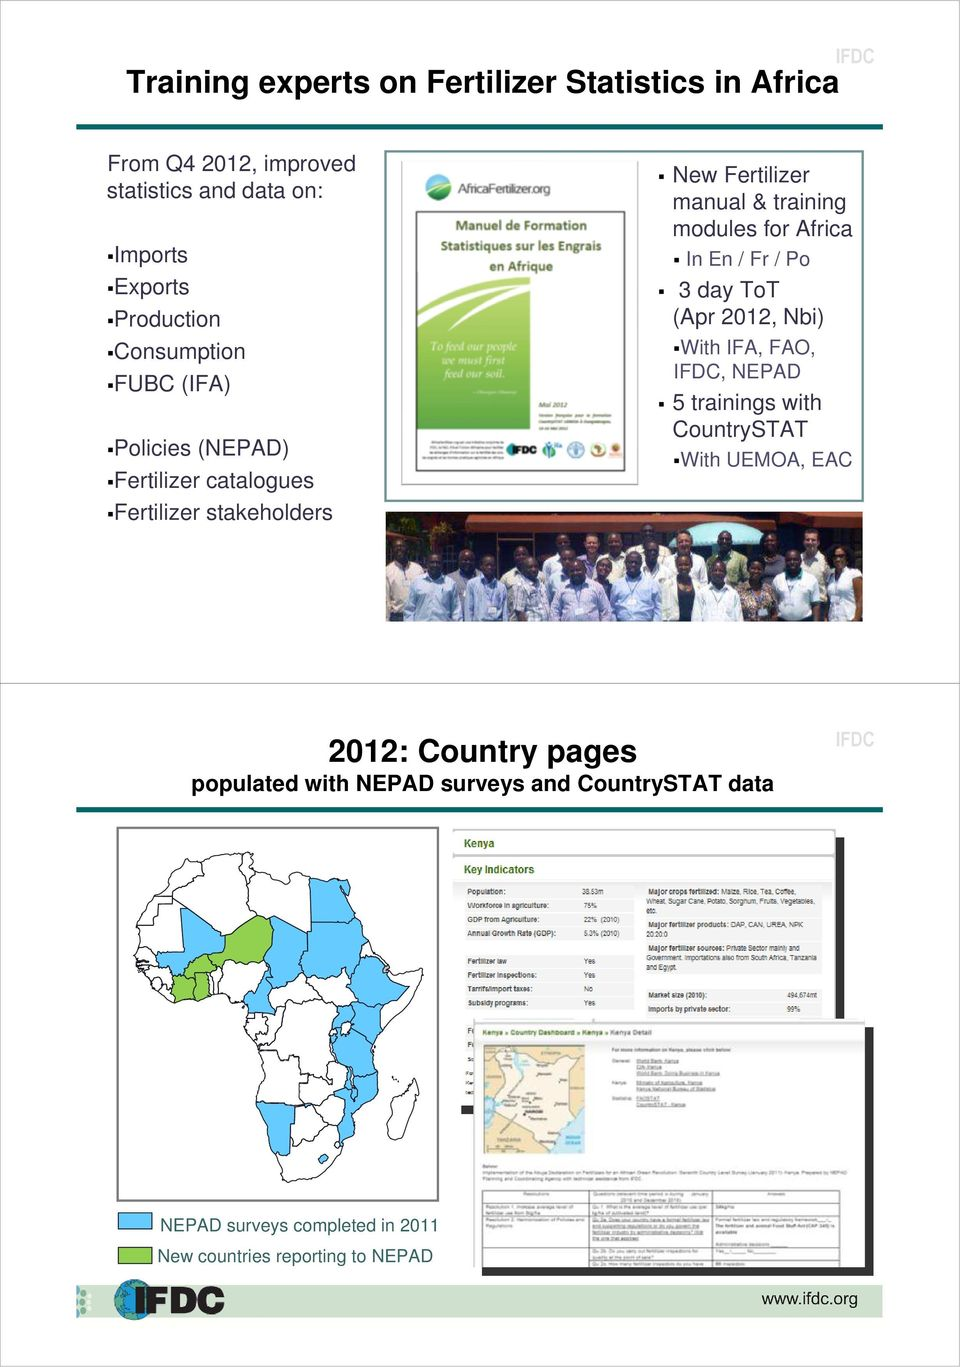 for Africa In En / Fr / Po 3 day ToT (Apr 2012, Nbi) With IFA, FAO,, NEPAD 5 trainings with CountrySTAT With UEMOA, EAC 2012: